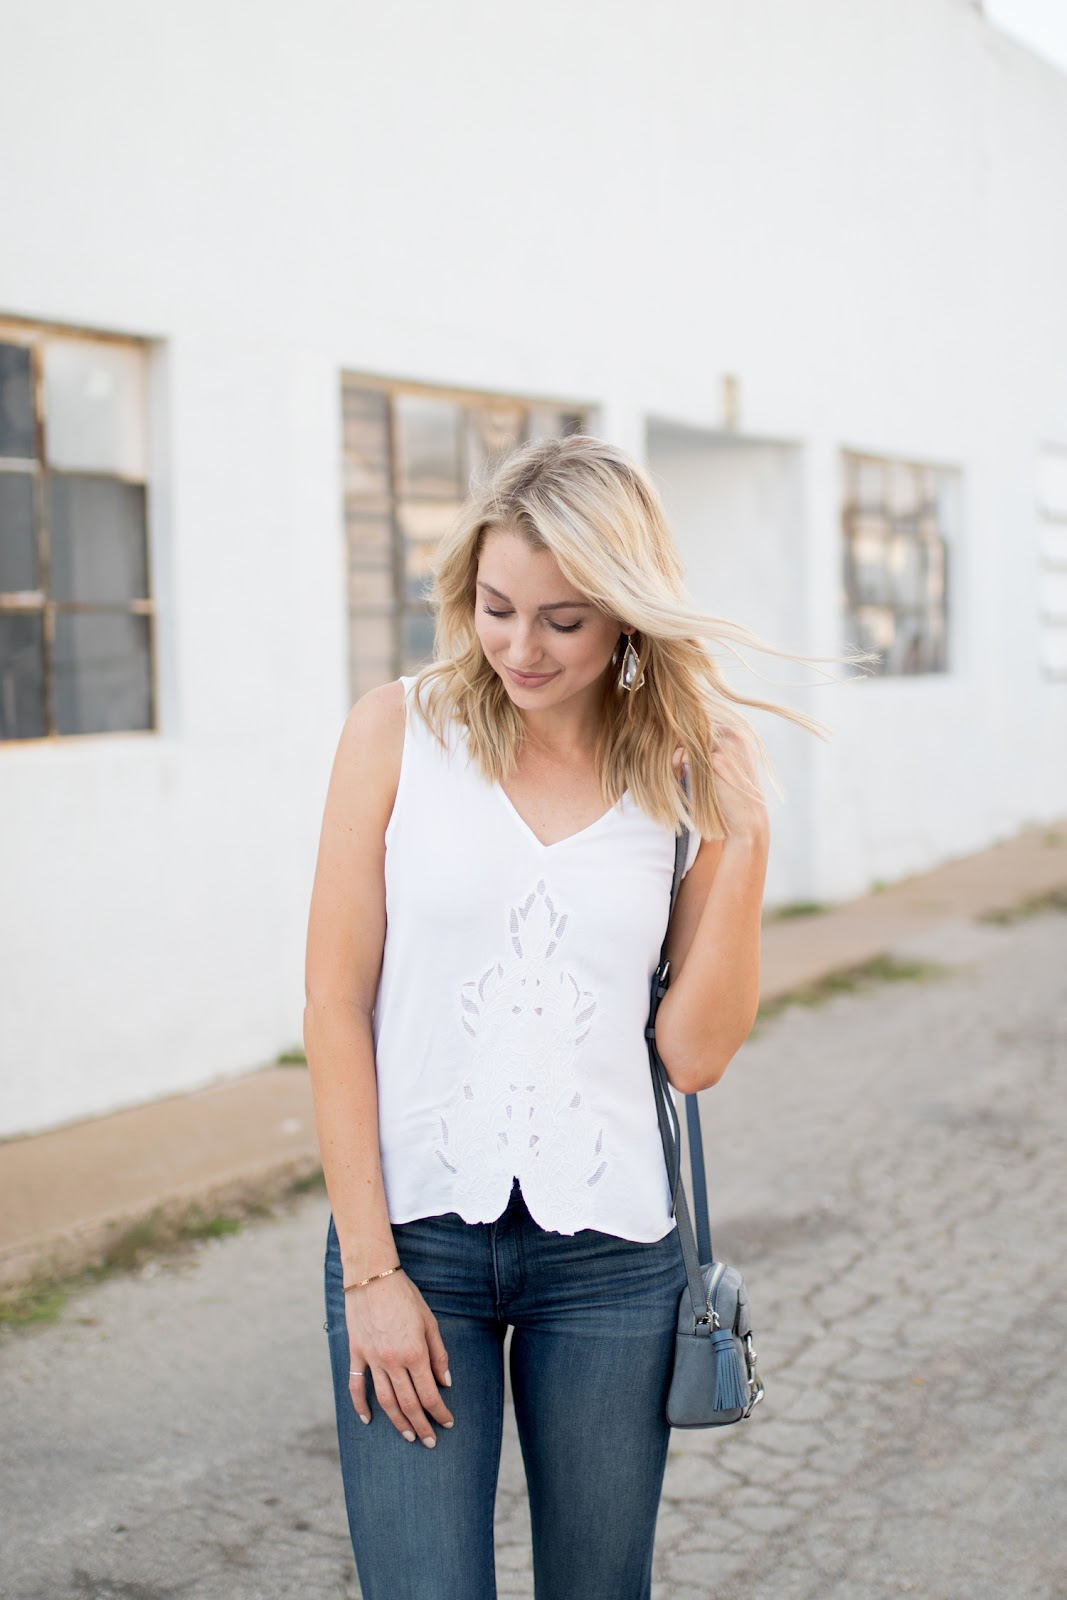 White eyelet top with denim